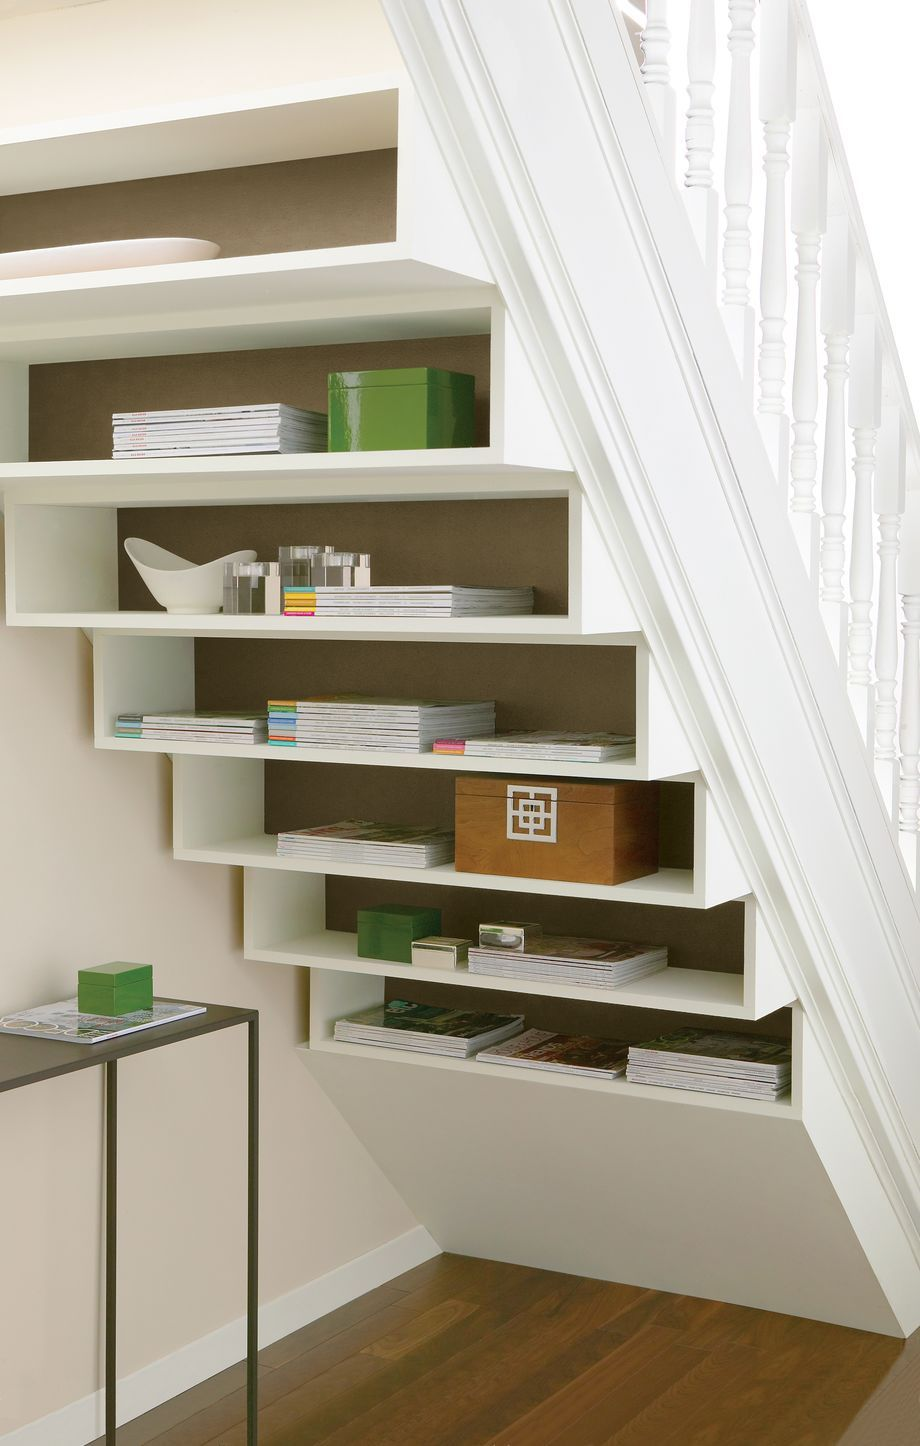 Home interior stairs  cool ideas to make or remodel storage under stairs  casa